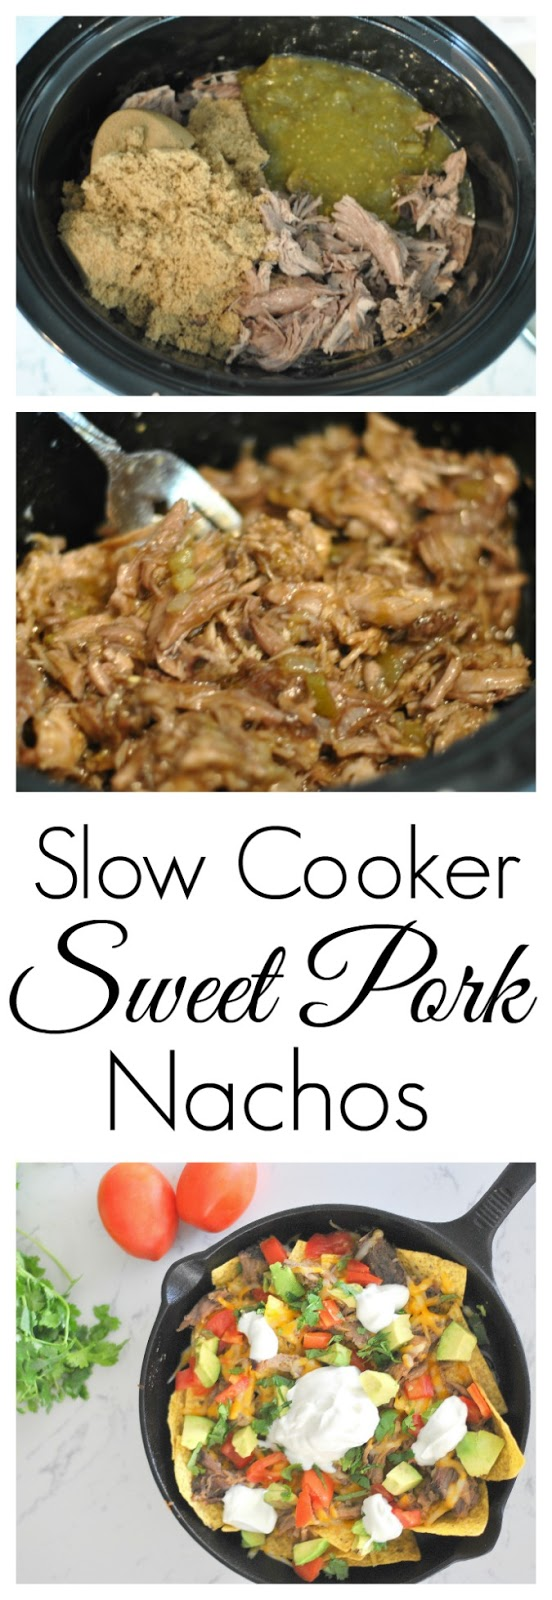 slow cooker sweet pork nachos